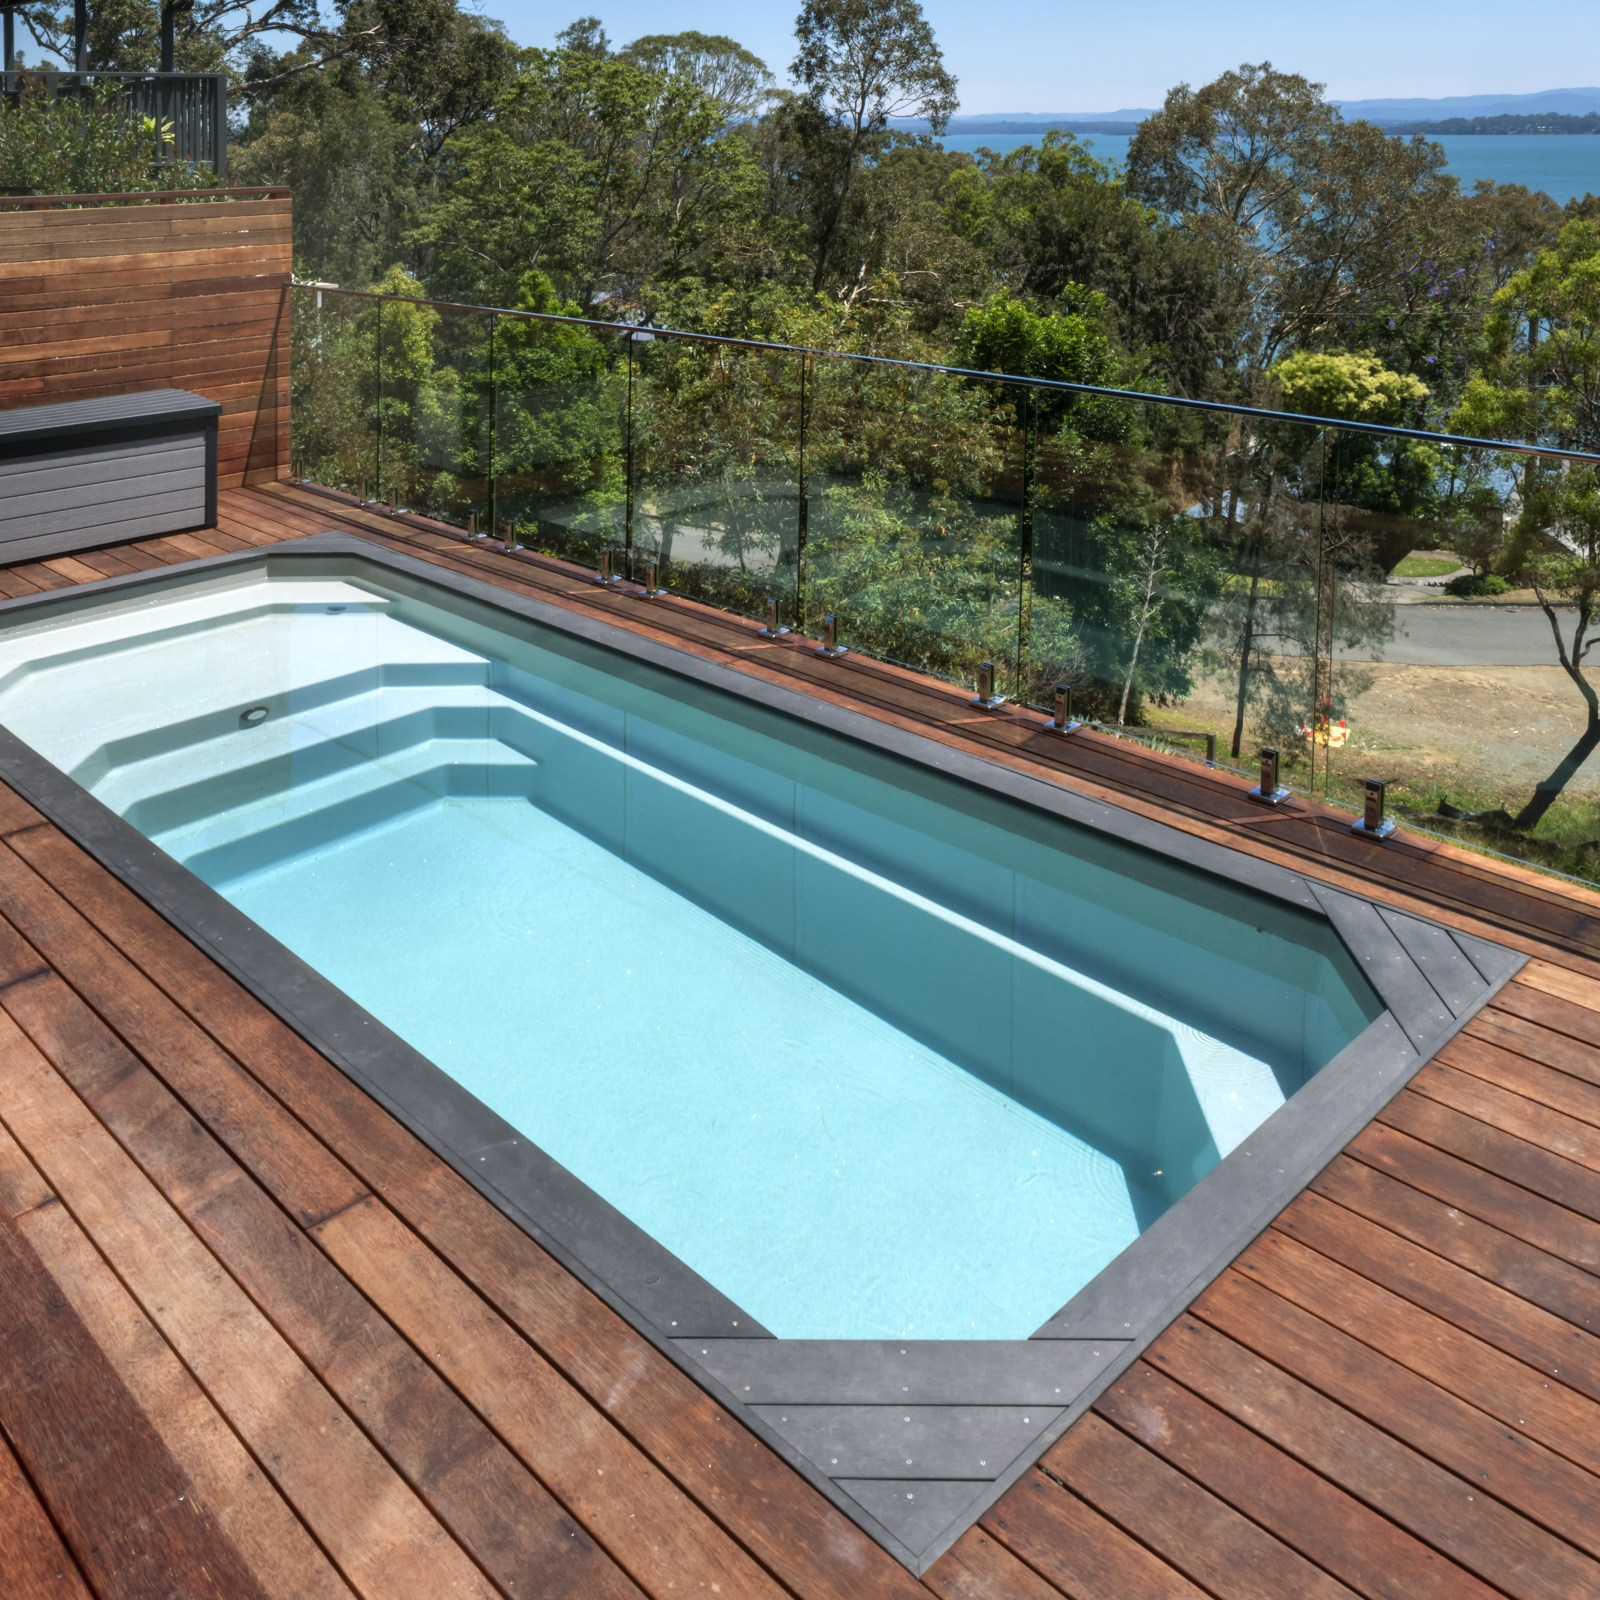 Little Pools Instant Pools, Timeless Lifestyle